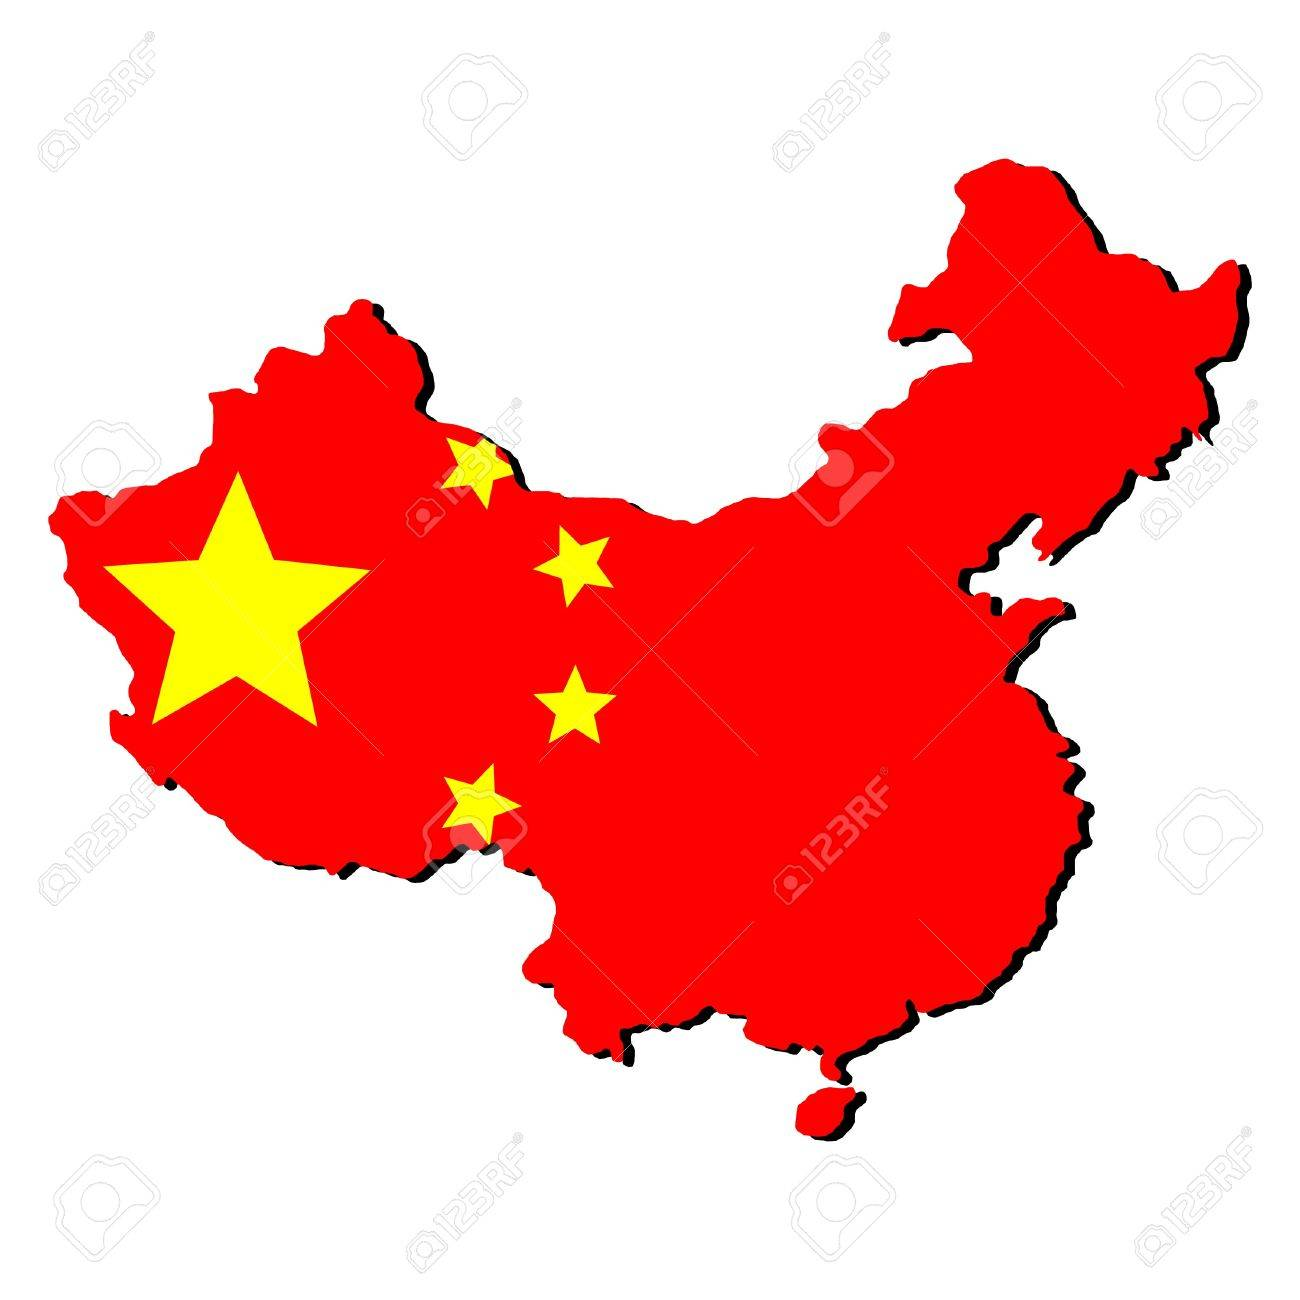 China Map Pictures.Map Of China And Chinese Flag Illustration Stock Photo Picture And